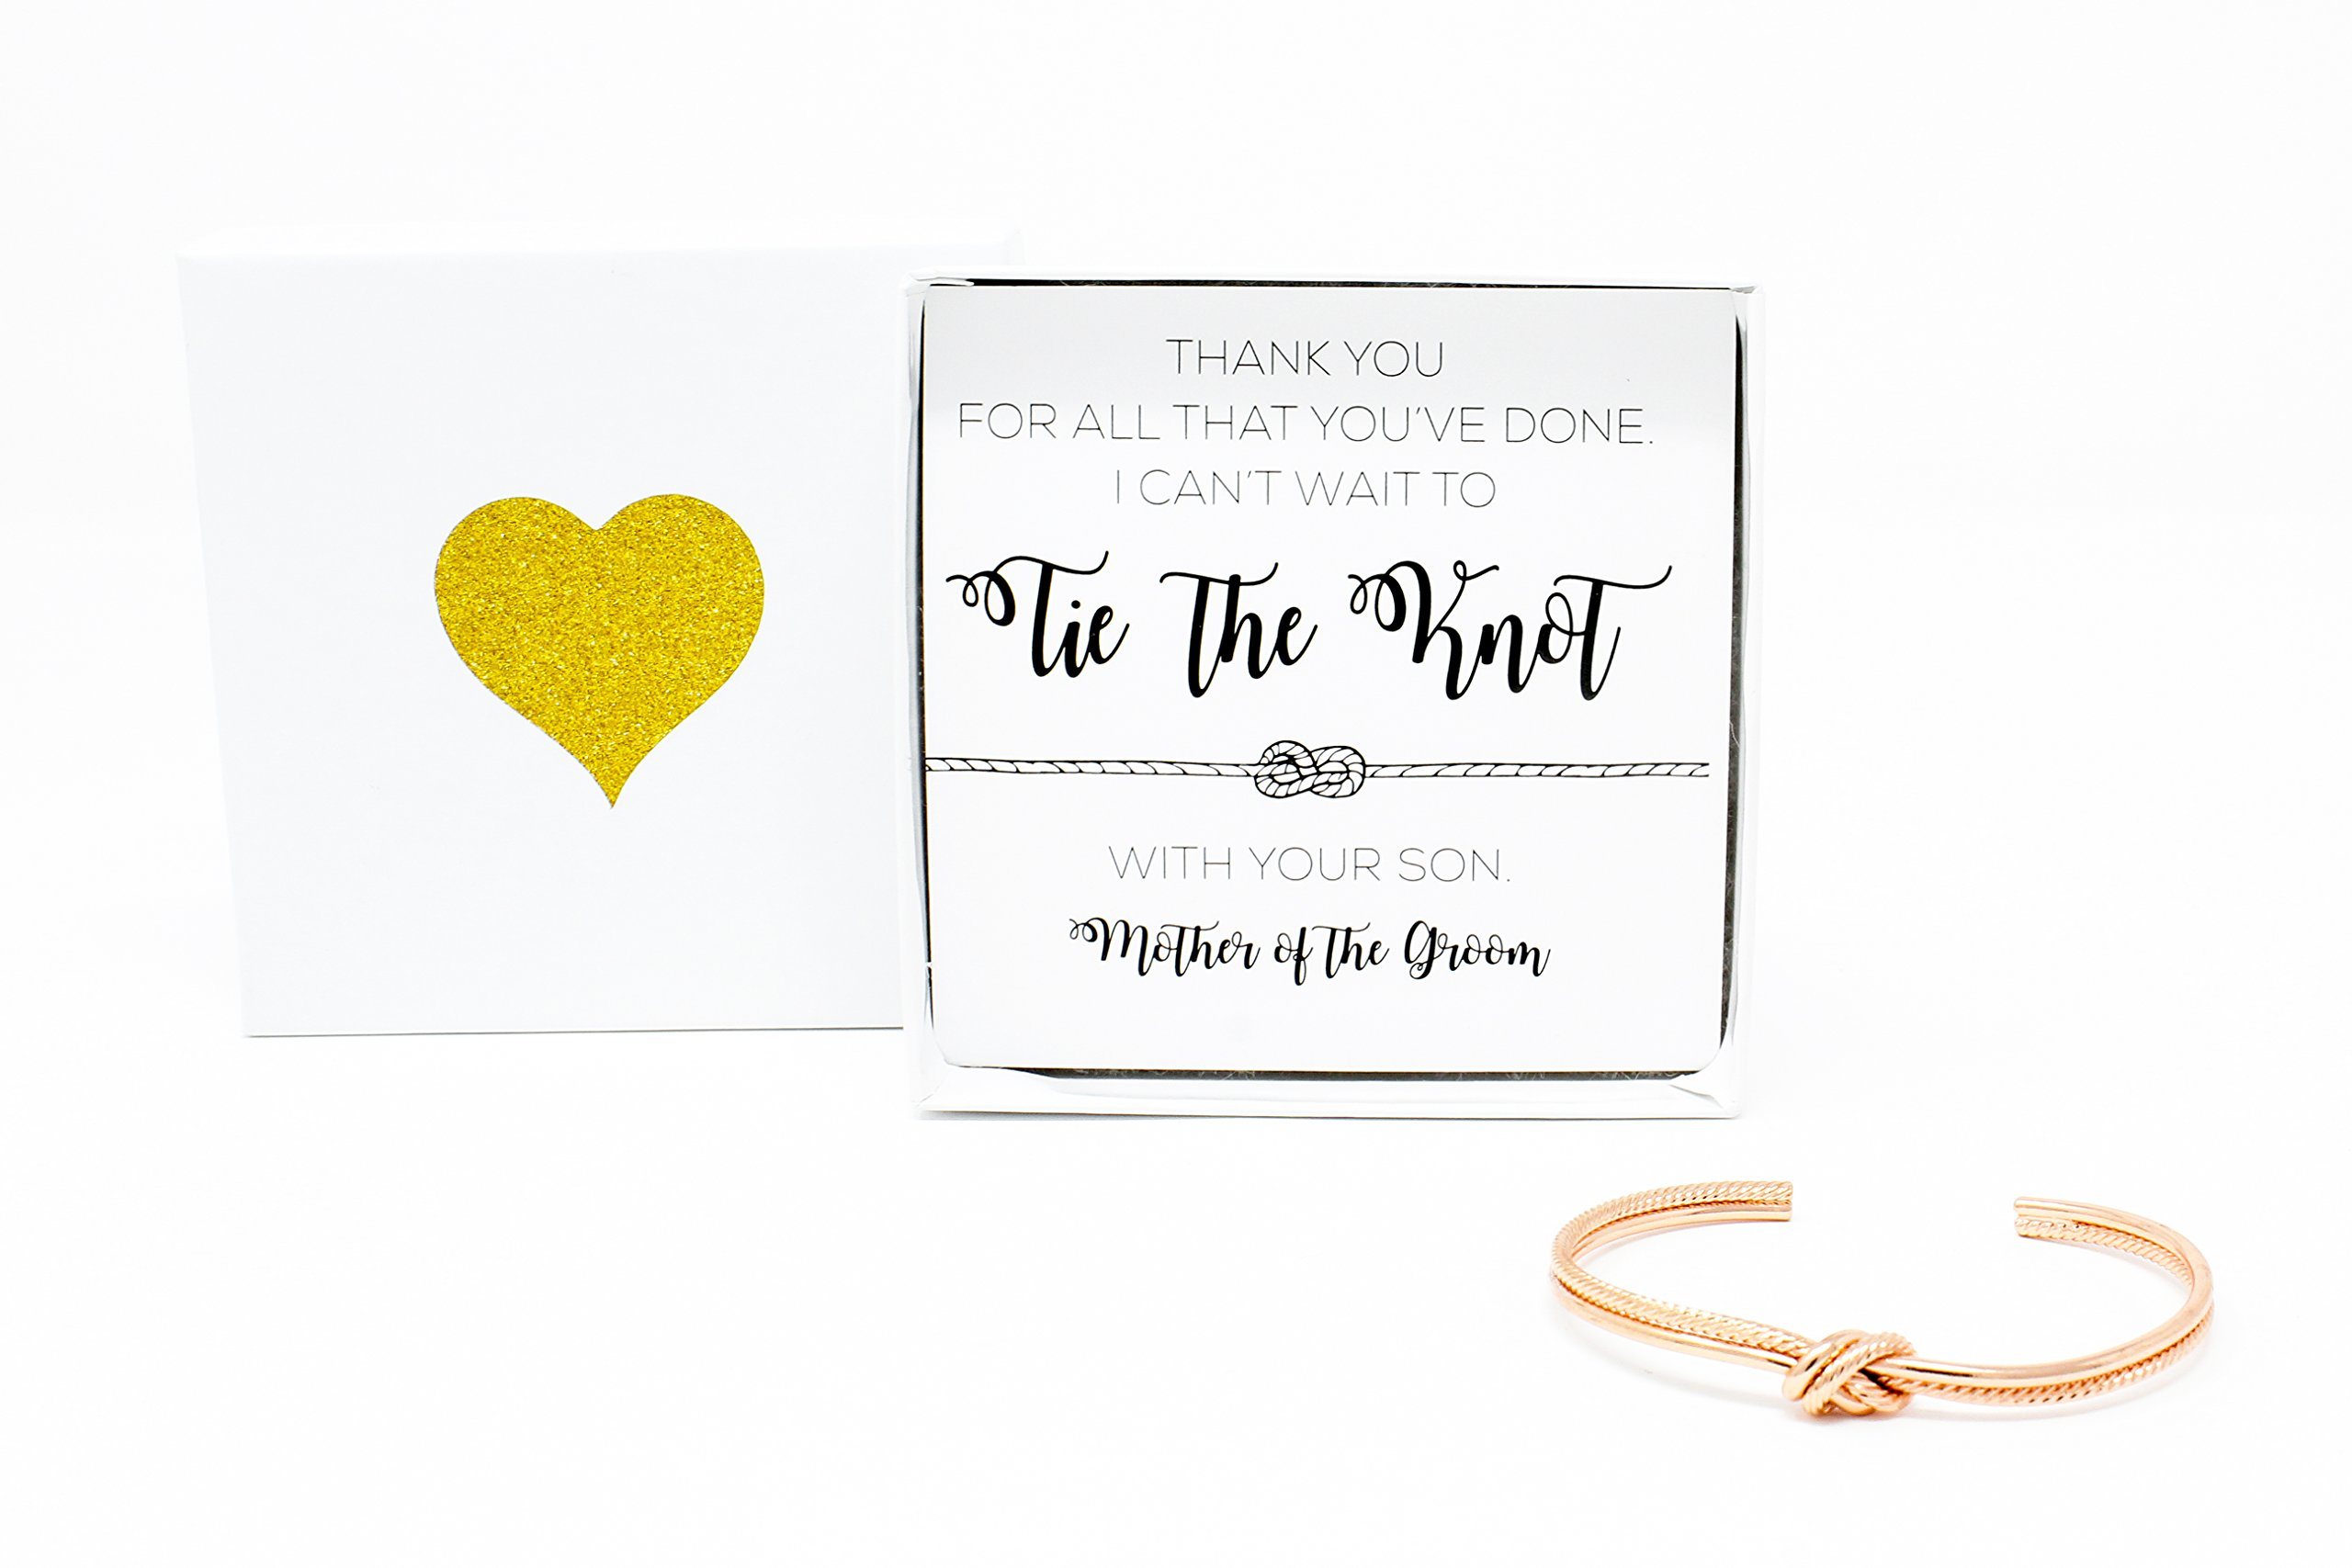 Lemon Honey Jewelry Bridesmaid Gifts - Mother of the Groom Tie The Bracelet w/Gift Box, Sailor Bridal Party Gift Sets, Adjustable Love Knot Cuff Bracelet (Gold, Rose Gold, Silver) (Rose Gold)